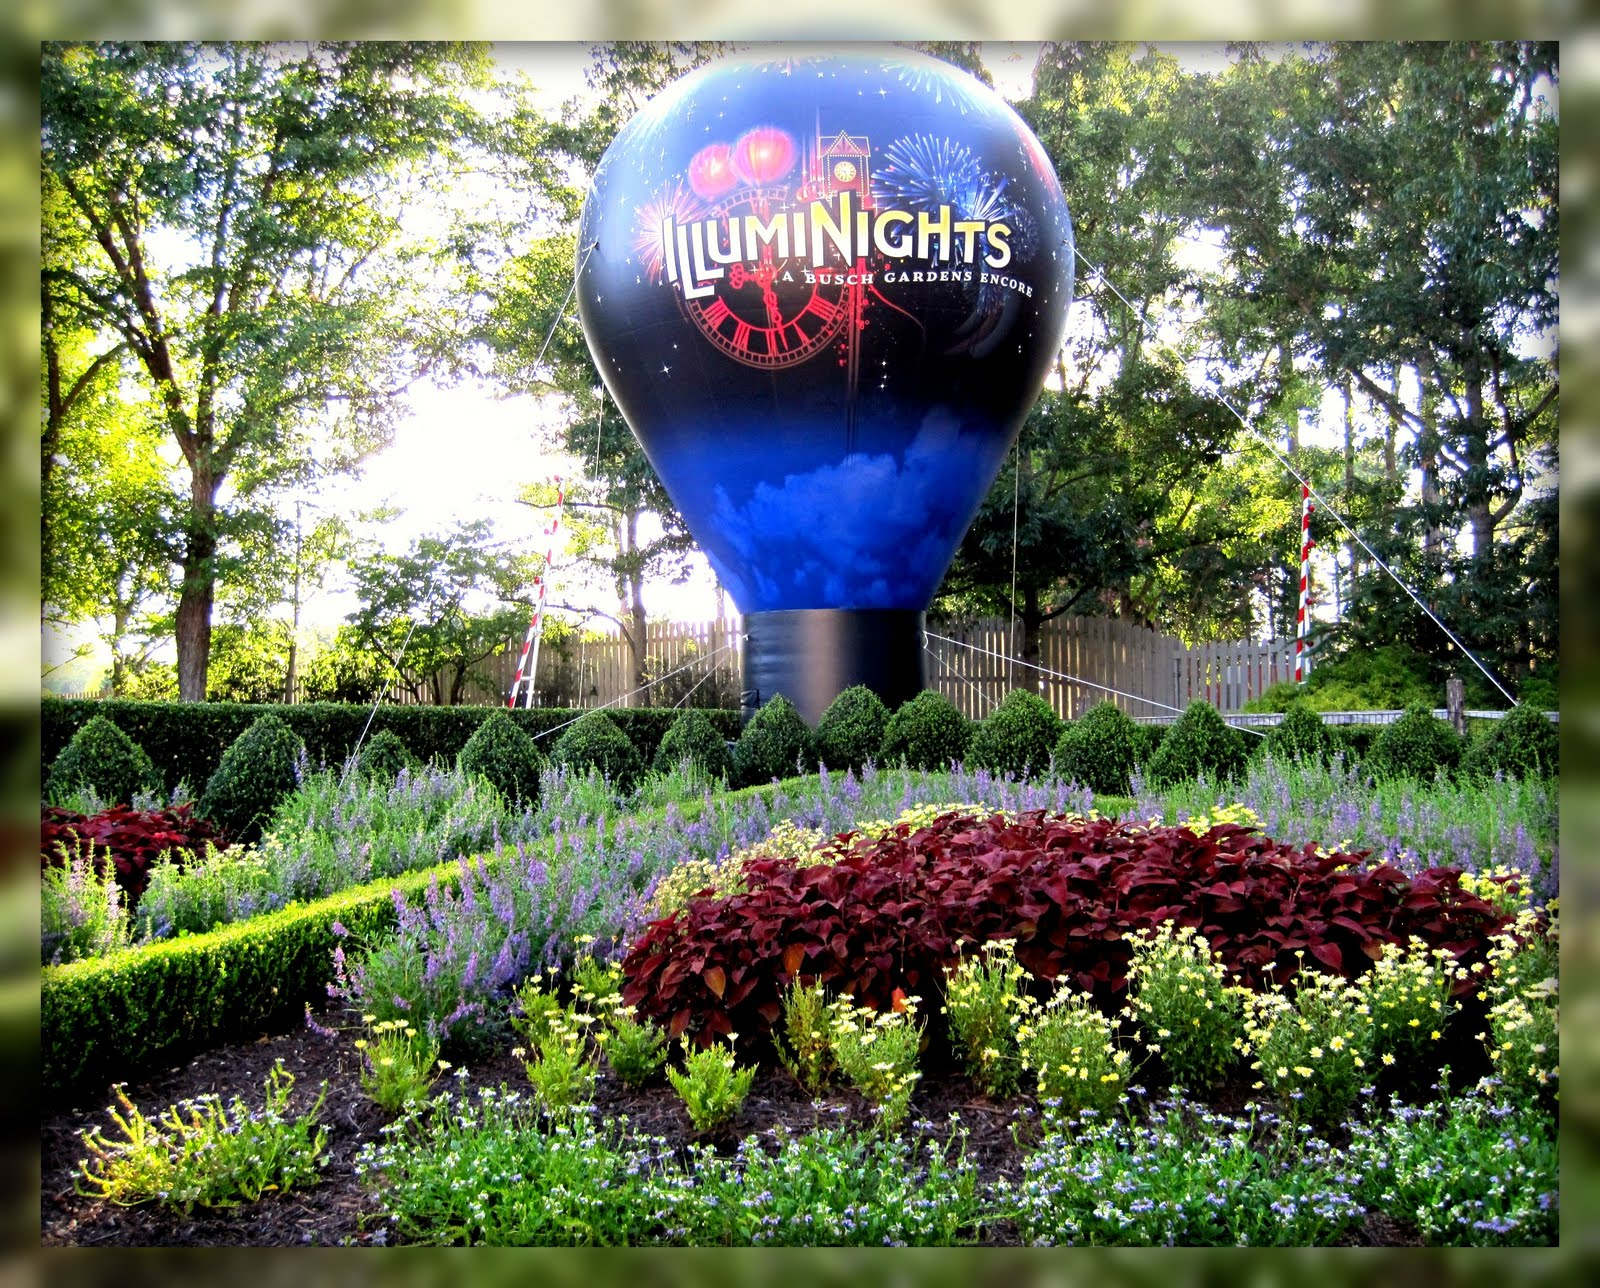 Living In Williamsburg Virginia Illuminights At Busch